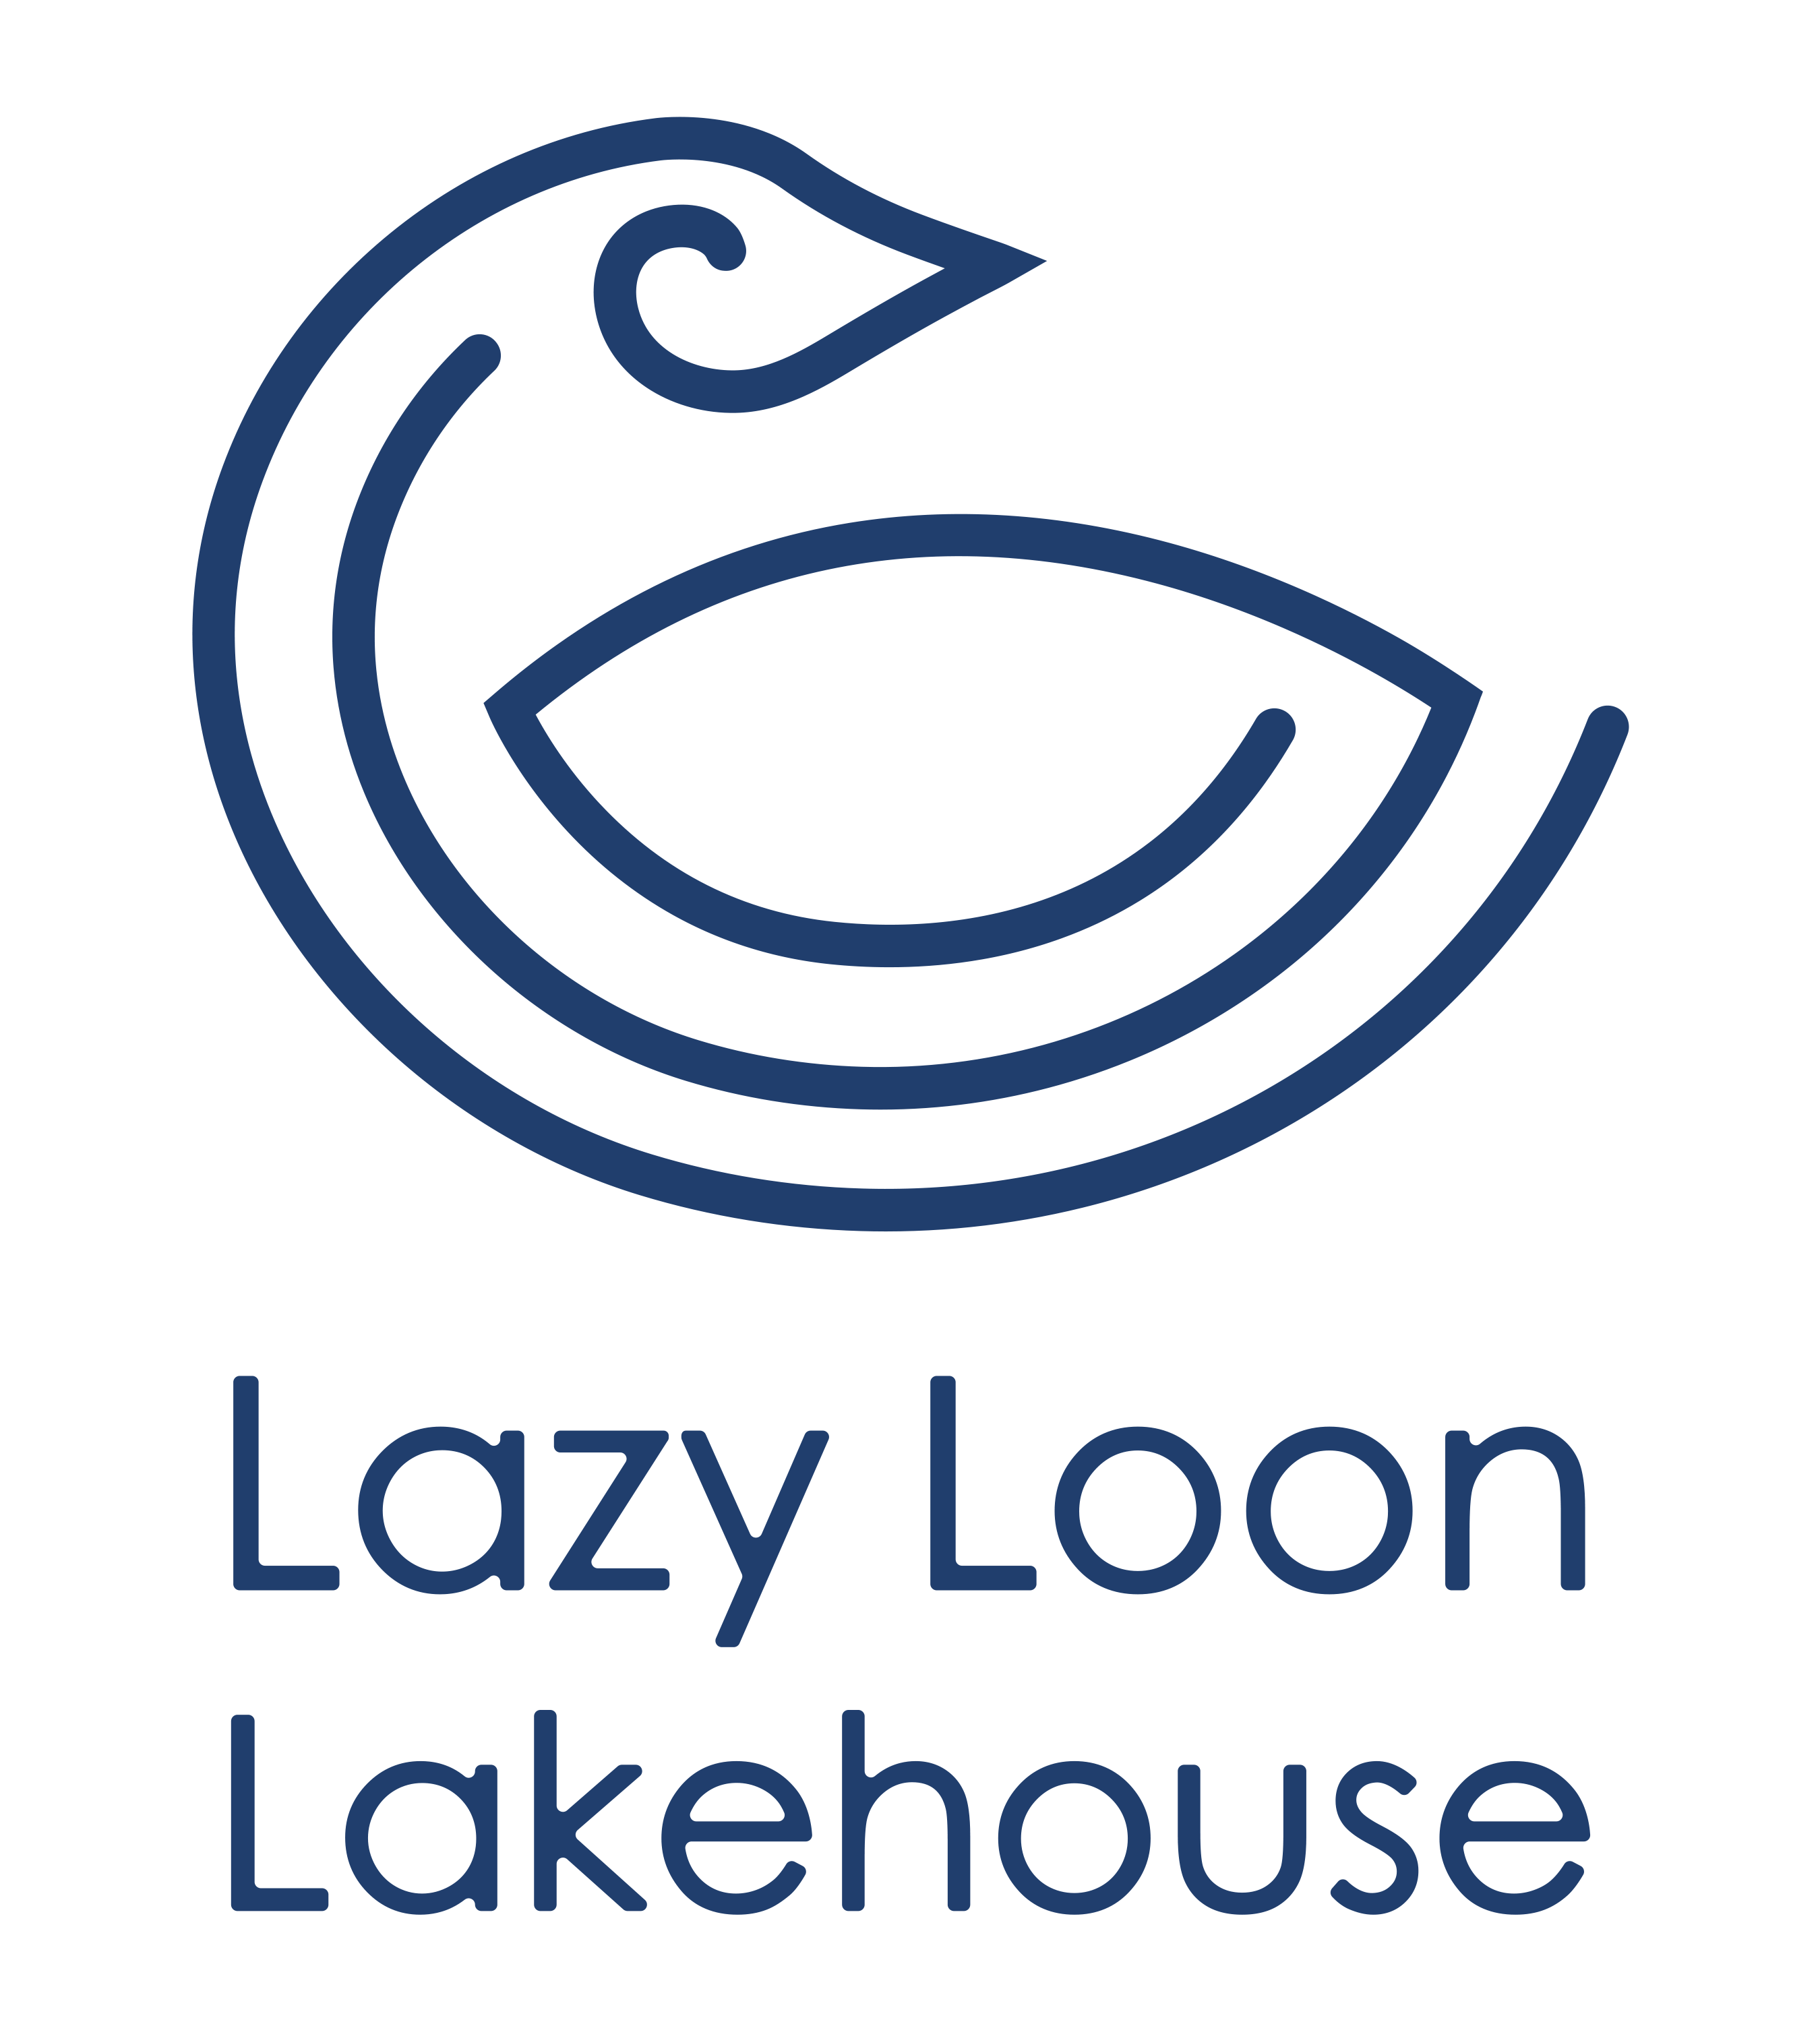 Lazy Loon Lakehouse logo